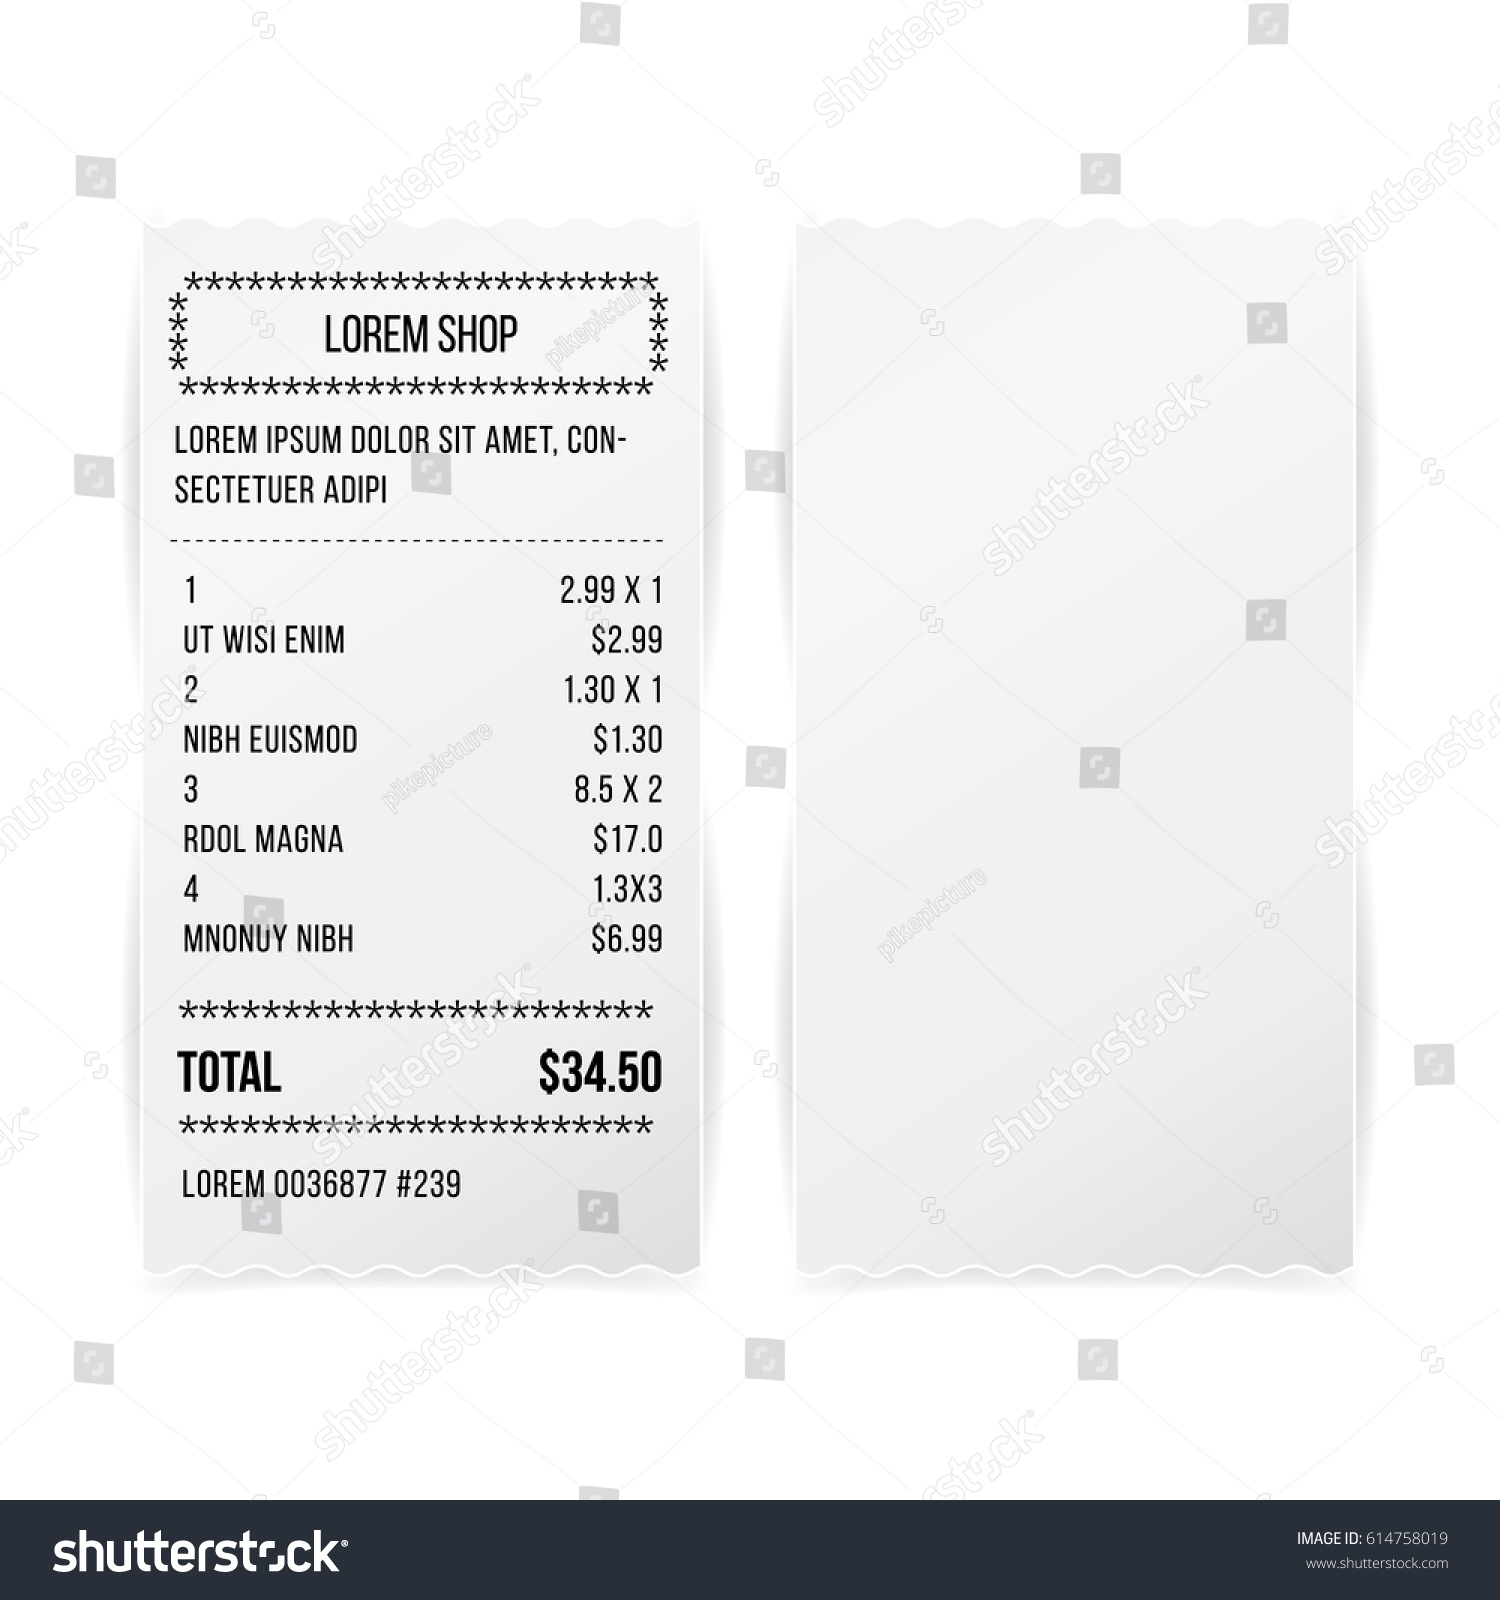 sales printed receipt white empty paper stock vector royalty free